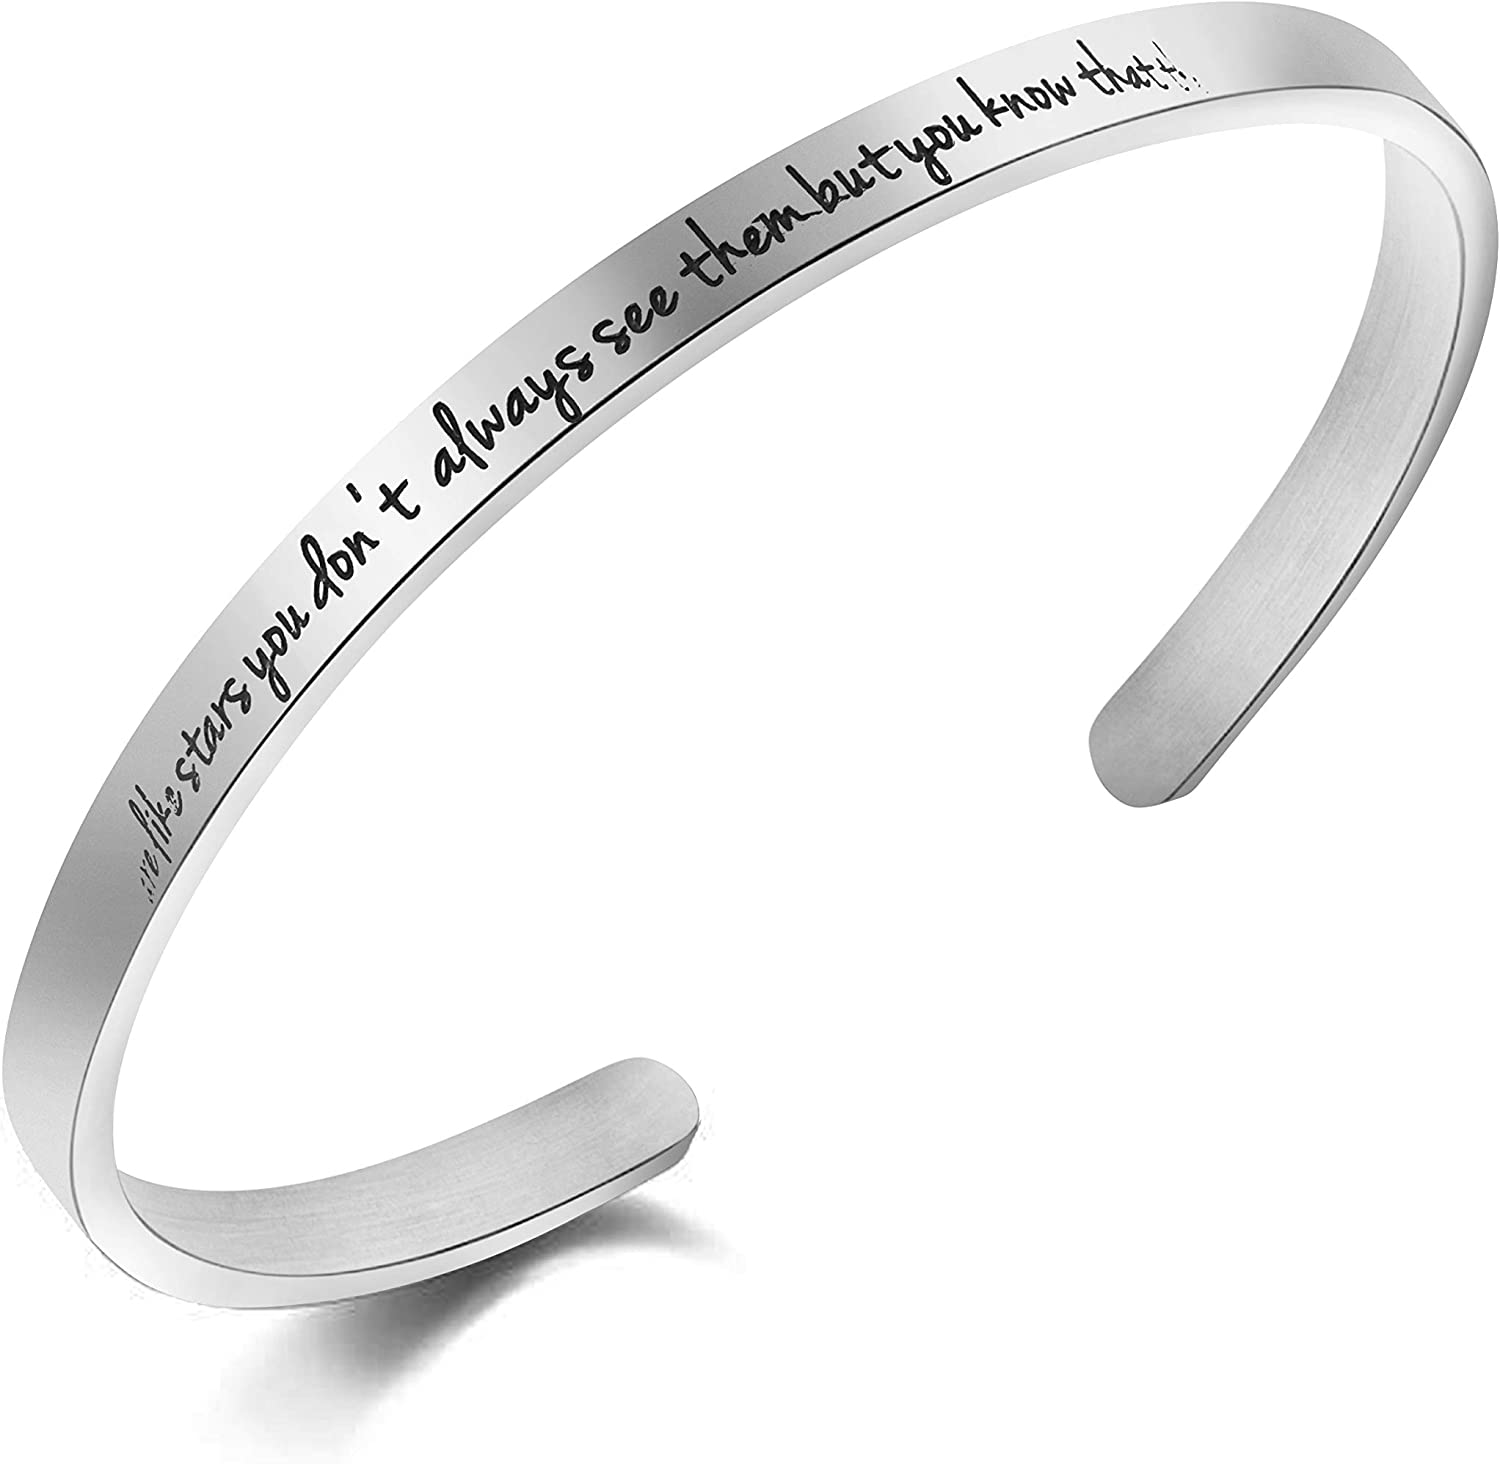 Awegift Good Friend Bracelet Hand Stamped Stainless Steel Cuff Bangle Women Jewelry Gift for Friends